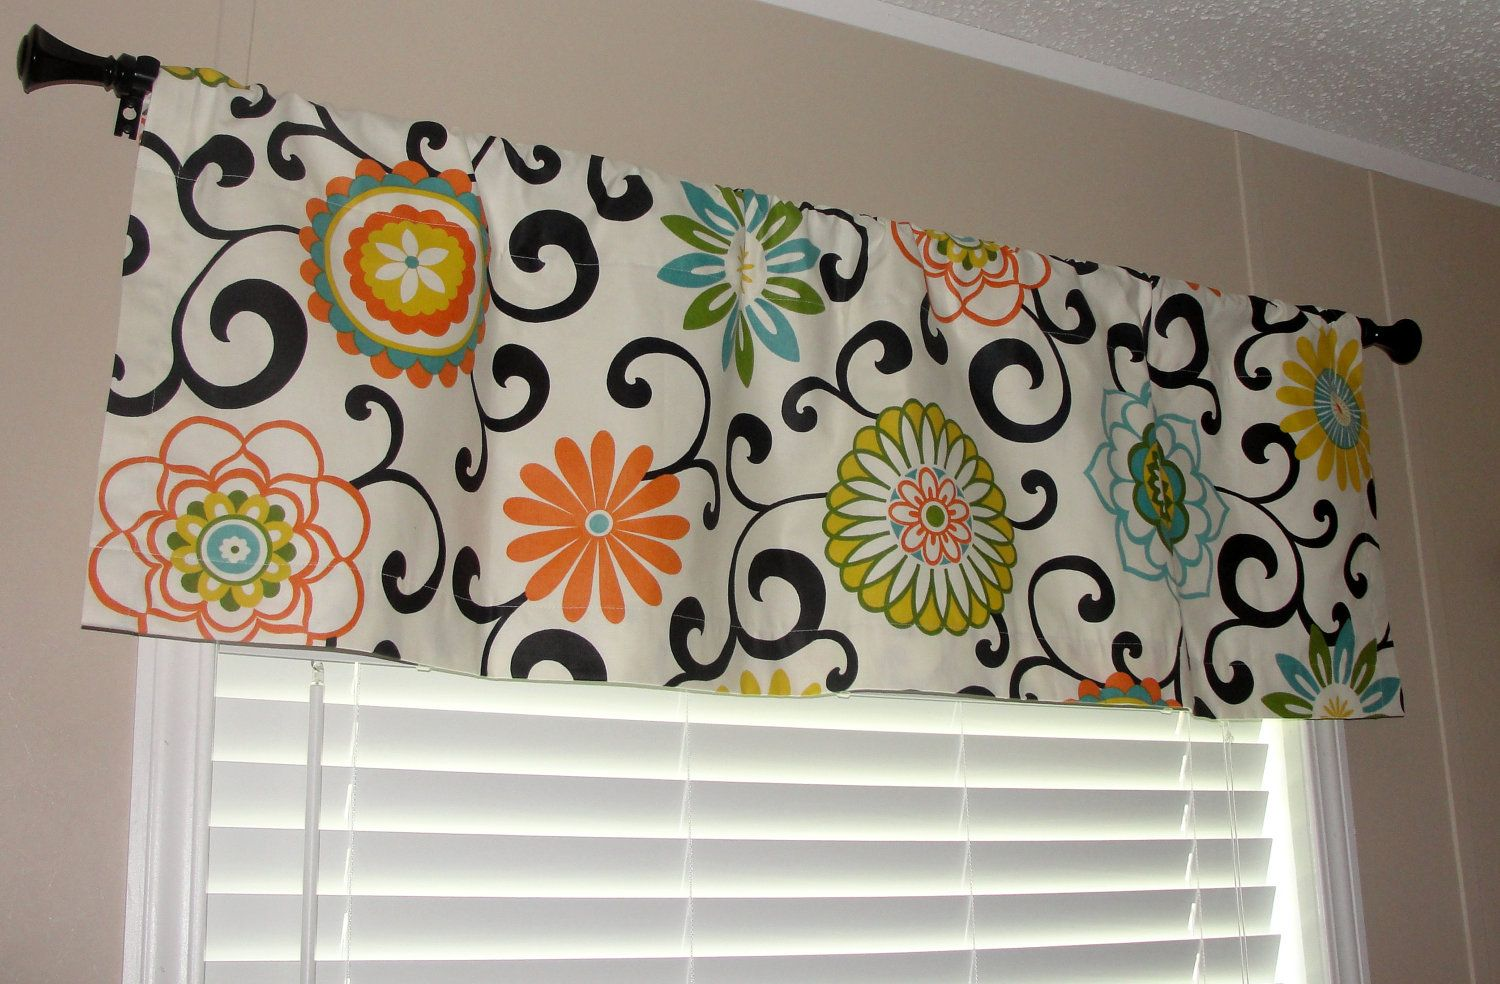 Waverly kitchen curtains - Waverly Kitchen Curtains 17 Best Images About Curtains On Pinterest Curtain Ideas Kitchen Valances And